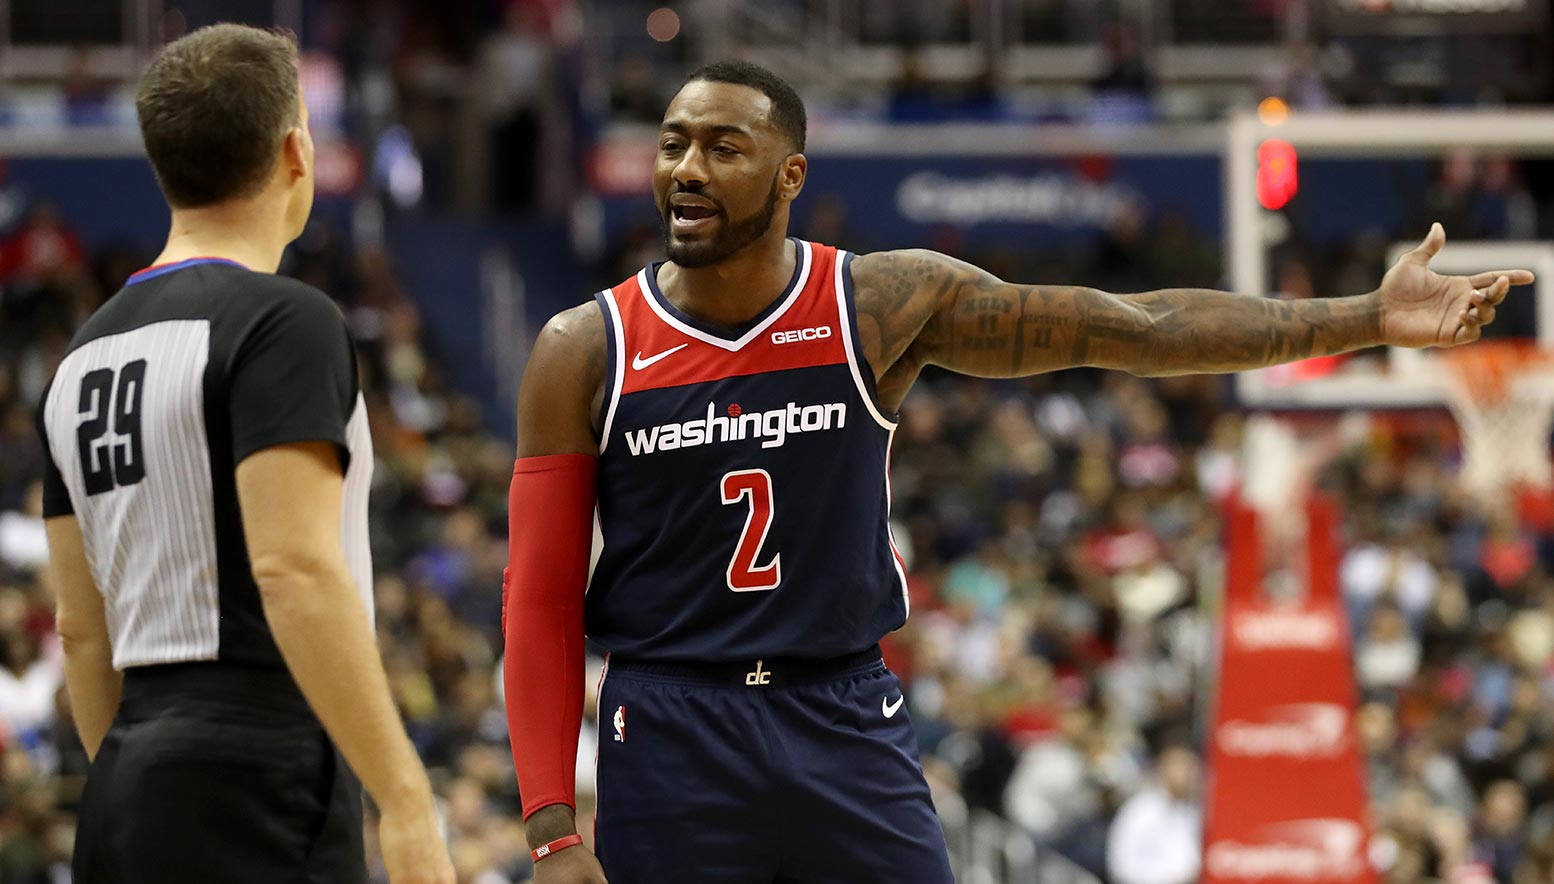 John Wall argues with ref